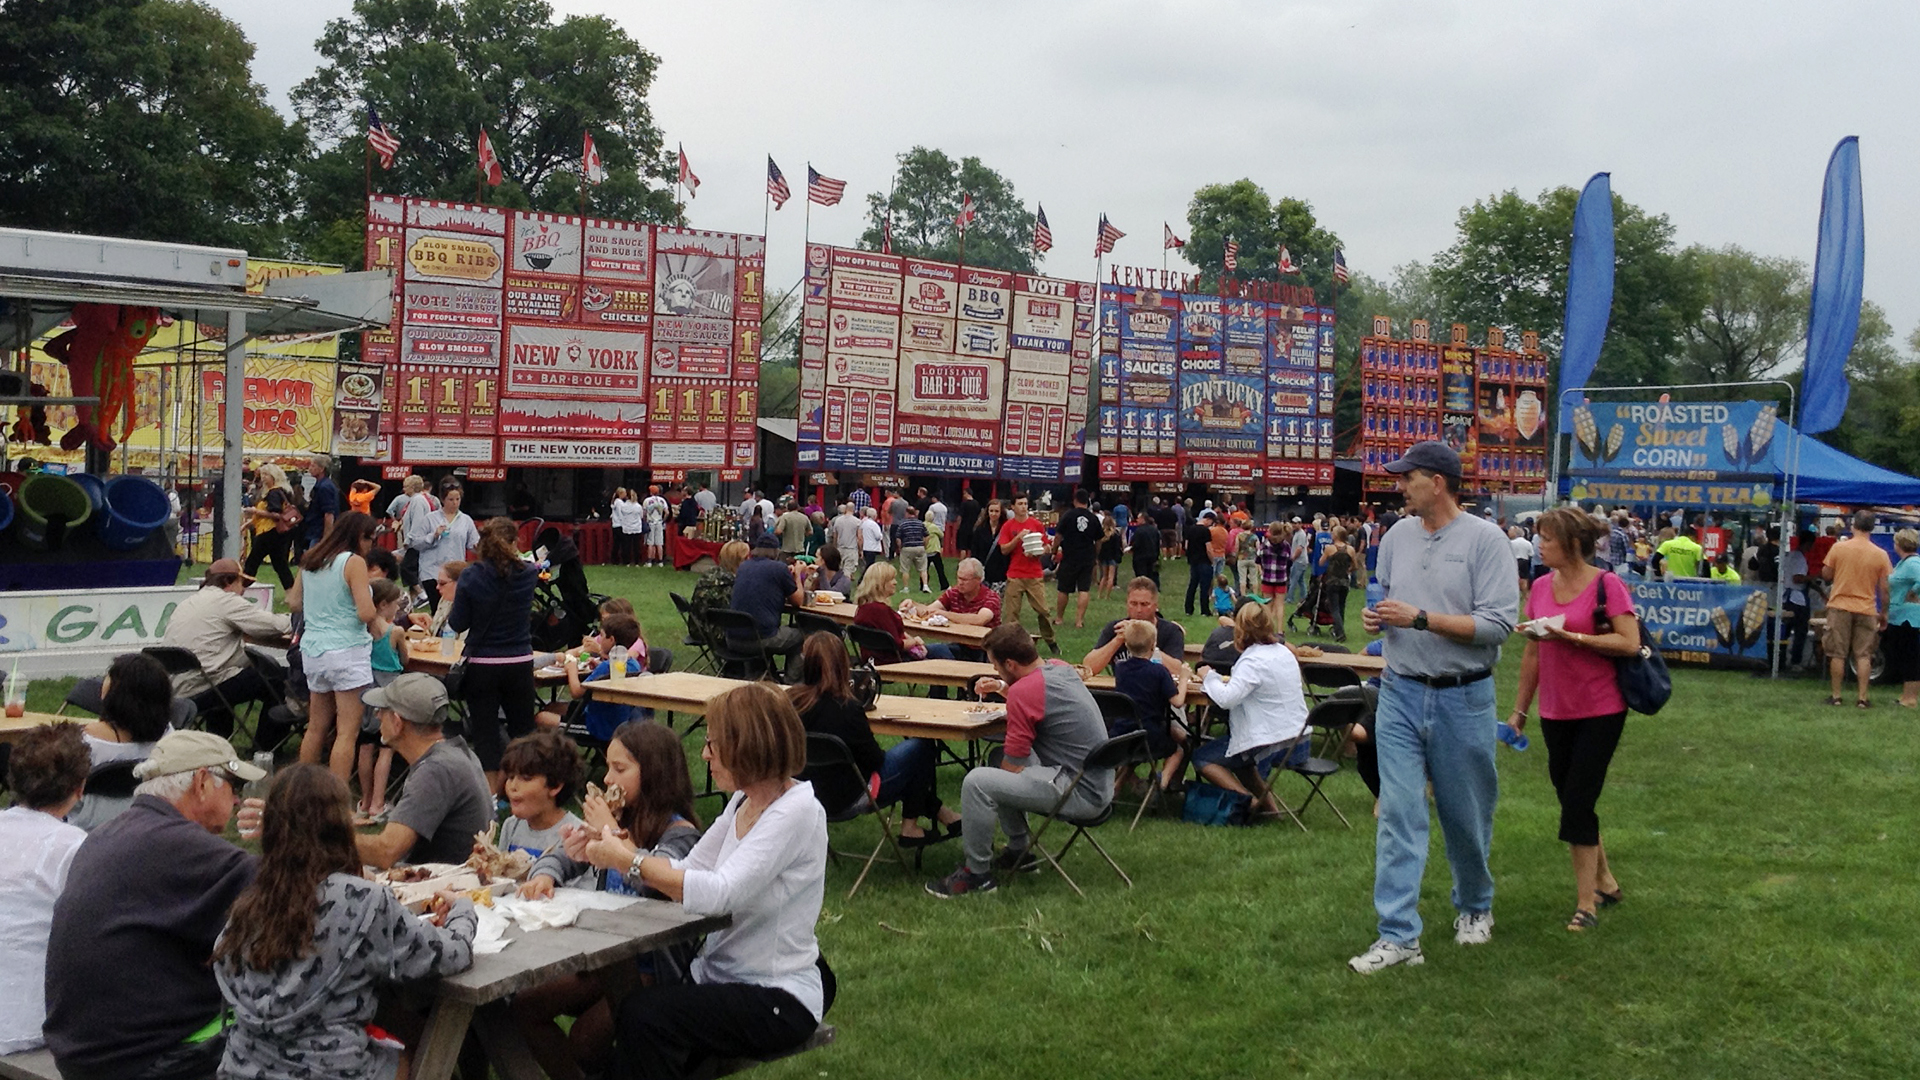 ribfestt - August Events To Look Forward To